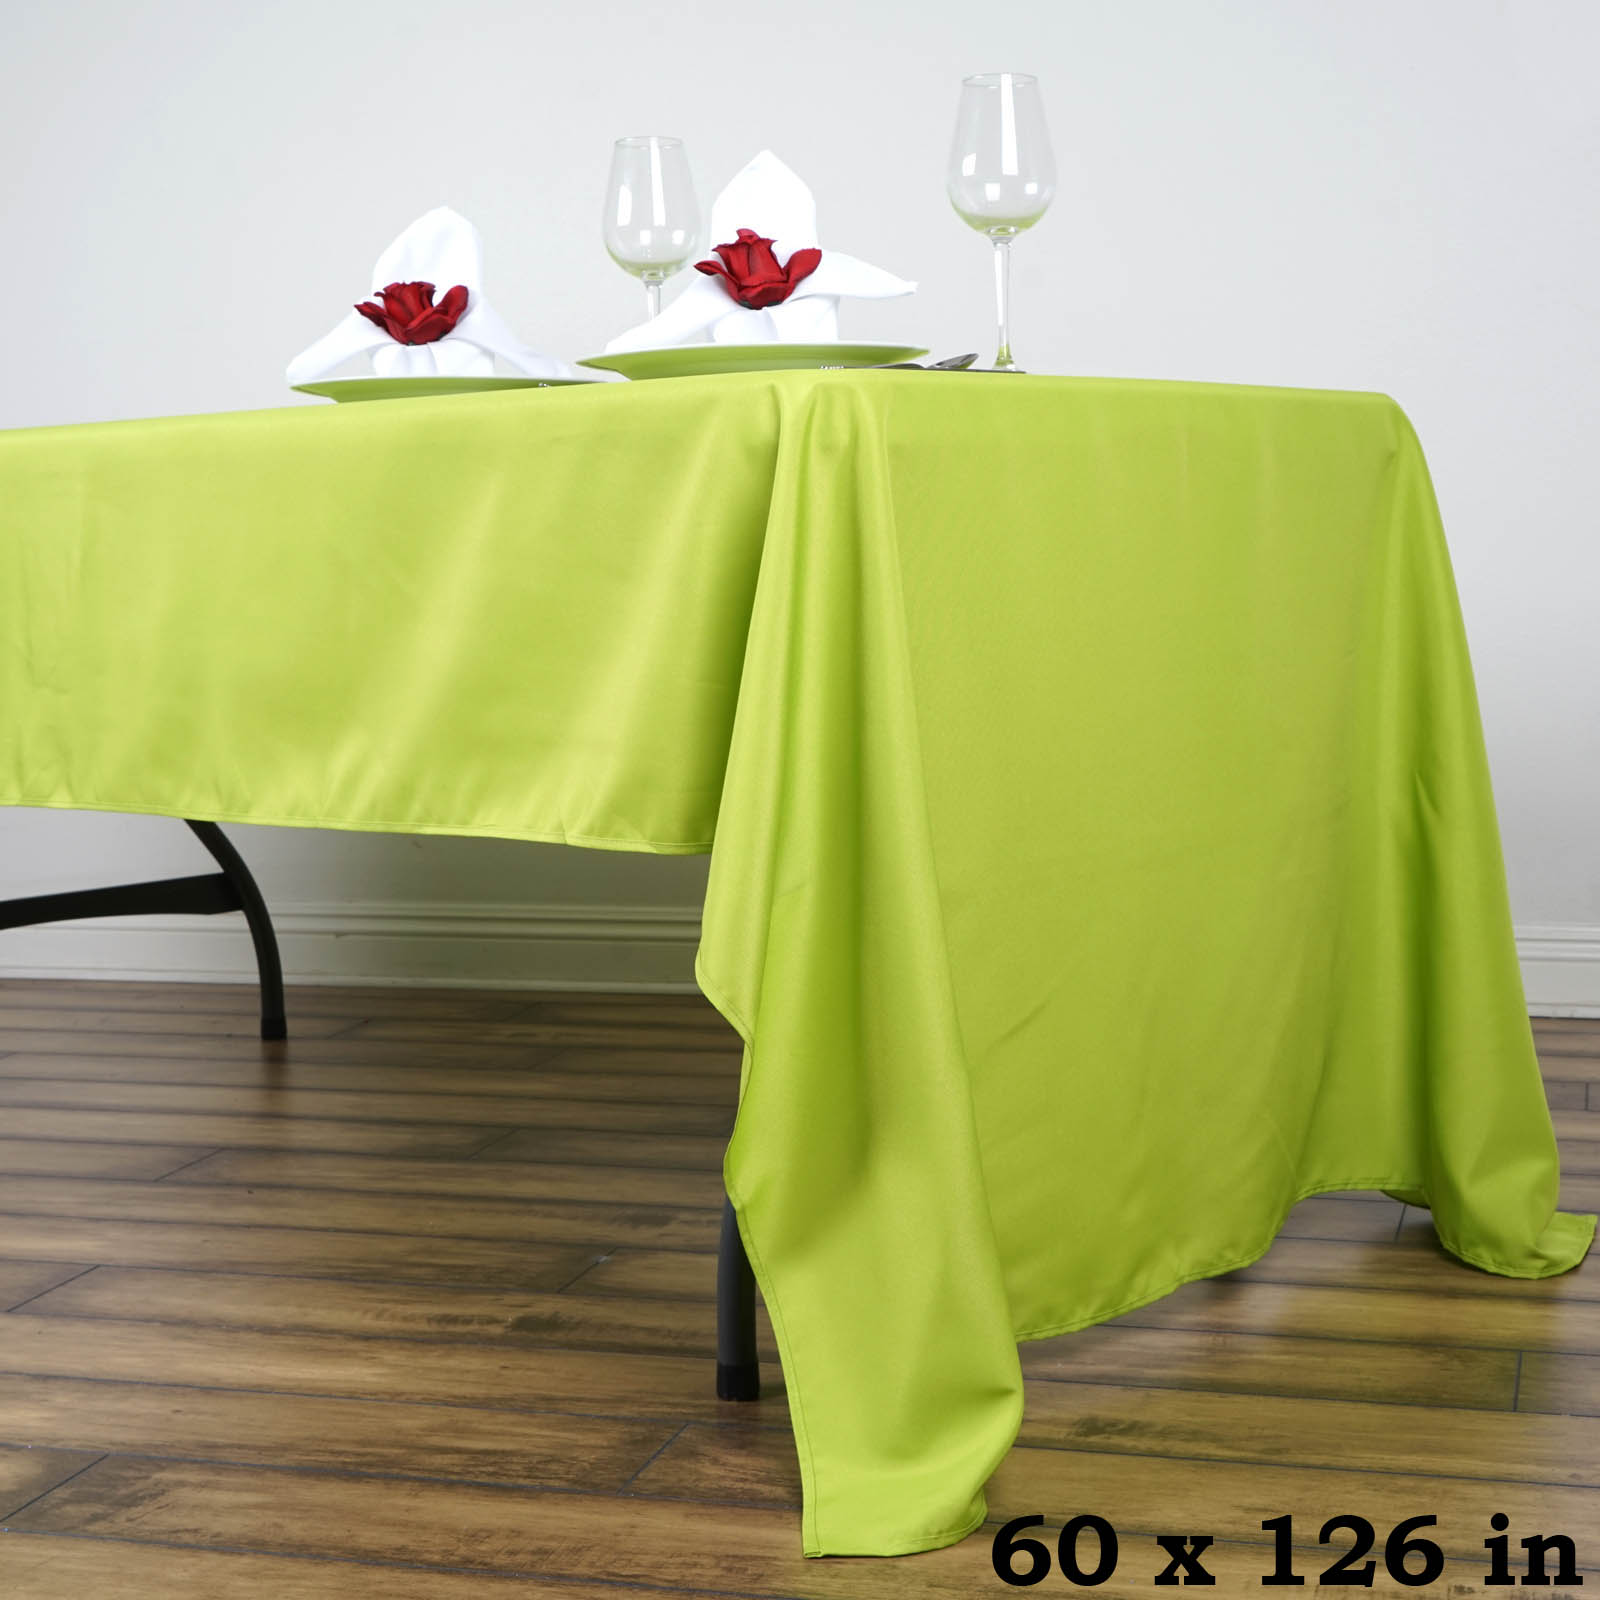 "BalsaCircle 60"" x 126"" Rectangular Polyester Tablecloth for Party Wedding Reception Catering Dining Home Table Linens"